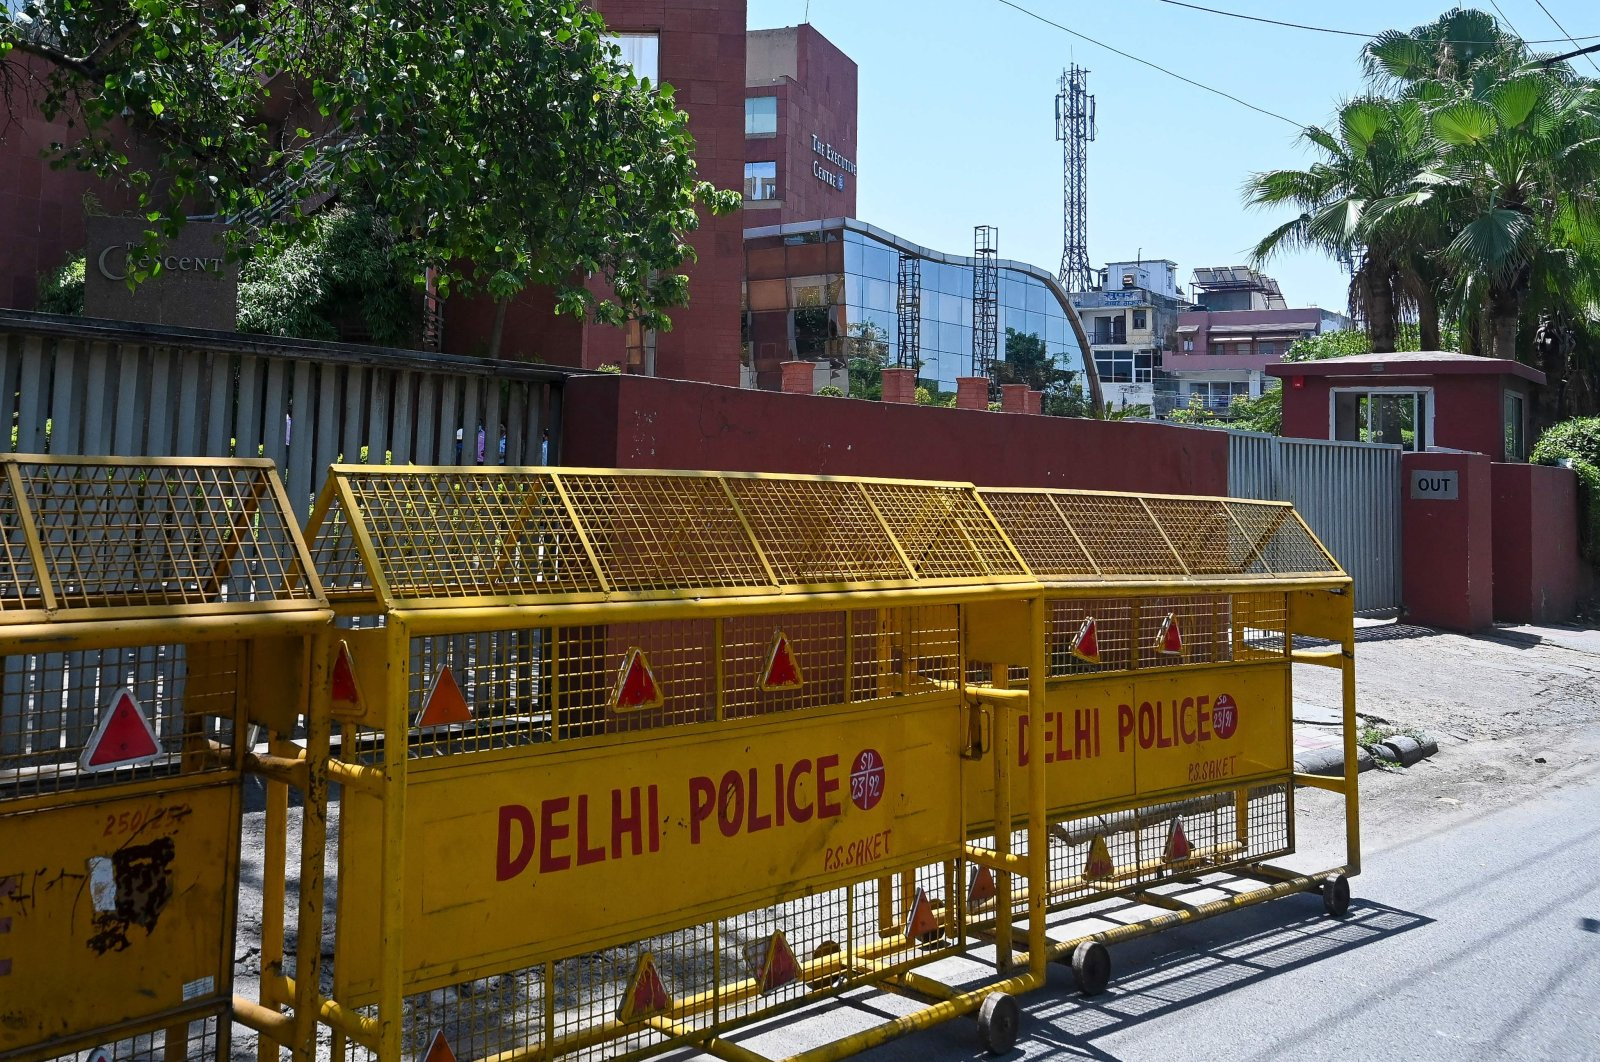 Police barricades are seen in front of the gate of Twitter India's office at the Crescent building in New Delhi, India, May 25, 2021. (AFP Photo)